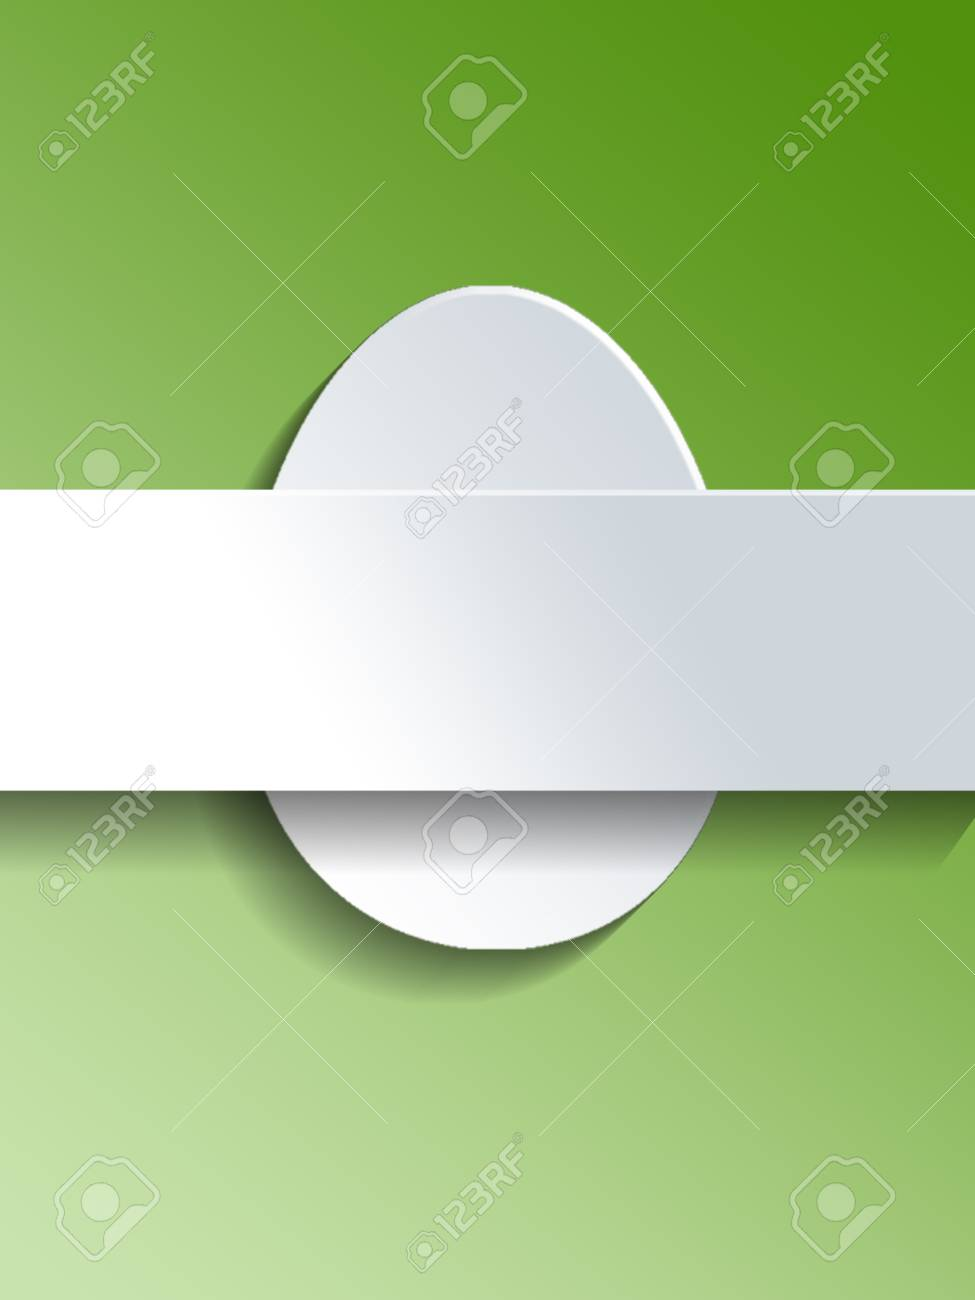 Blank Easter Egg Template With White Cut Outs Of An Easter Egg